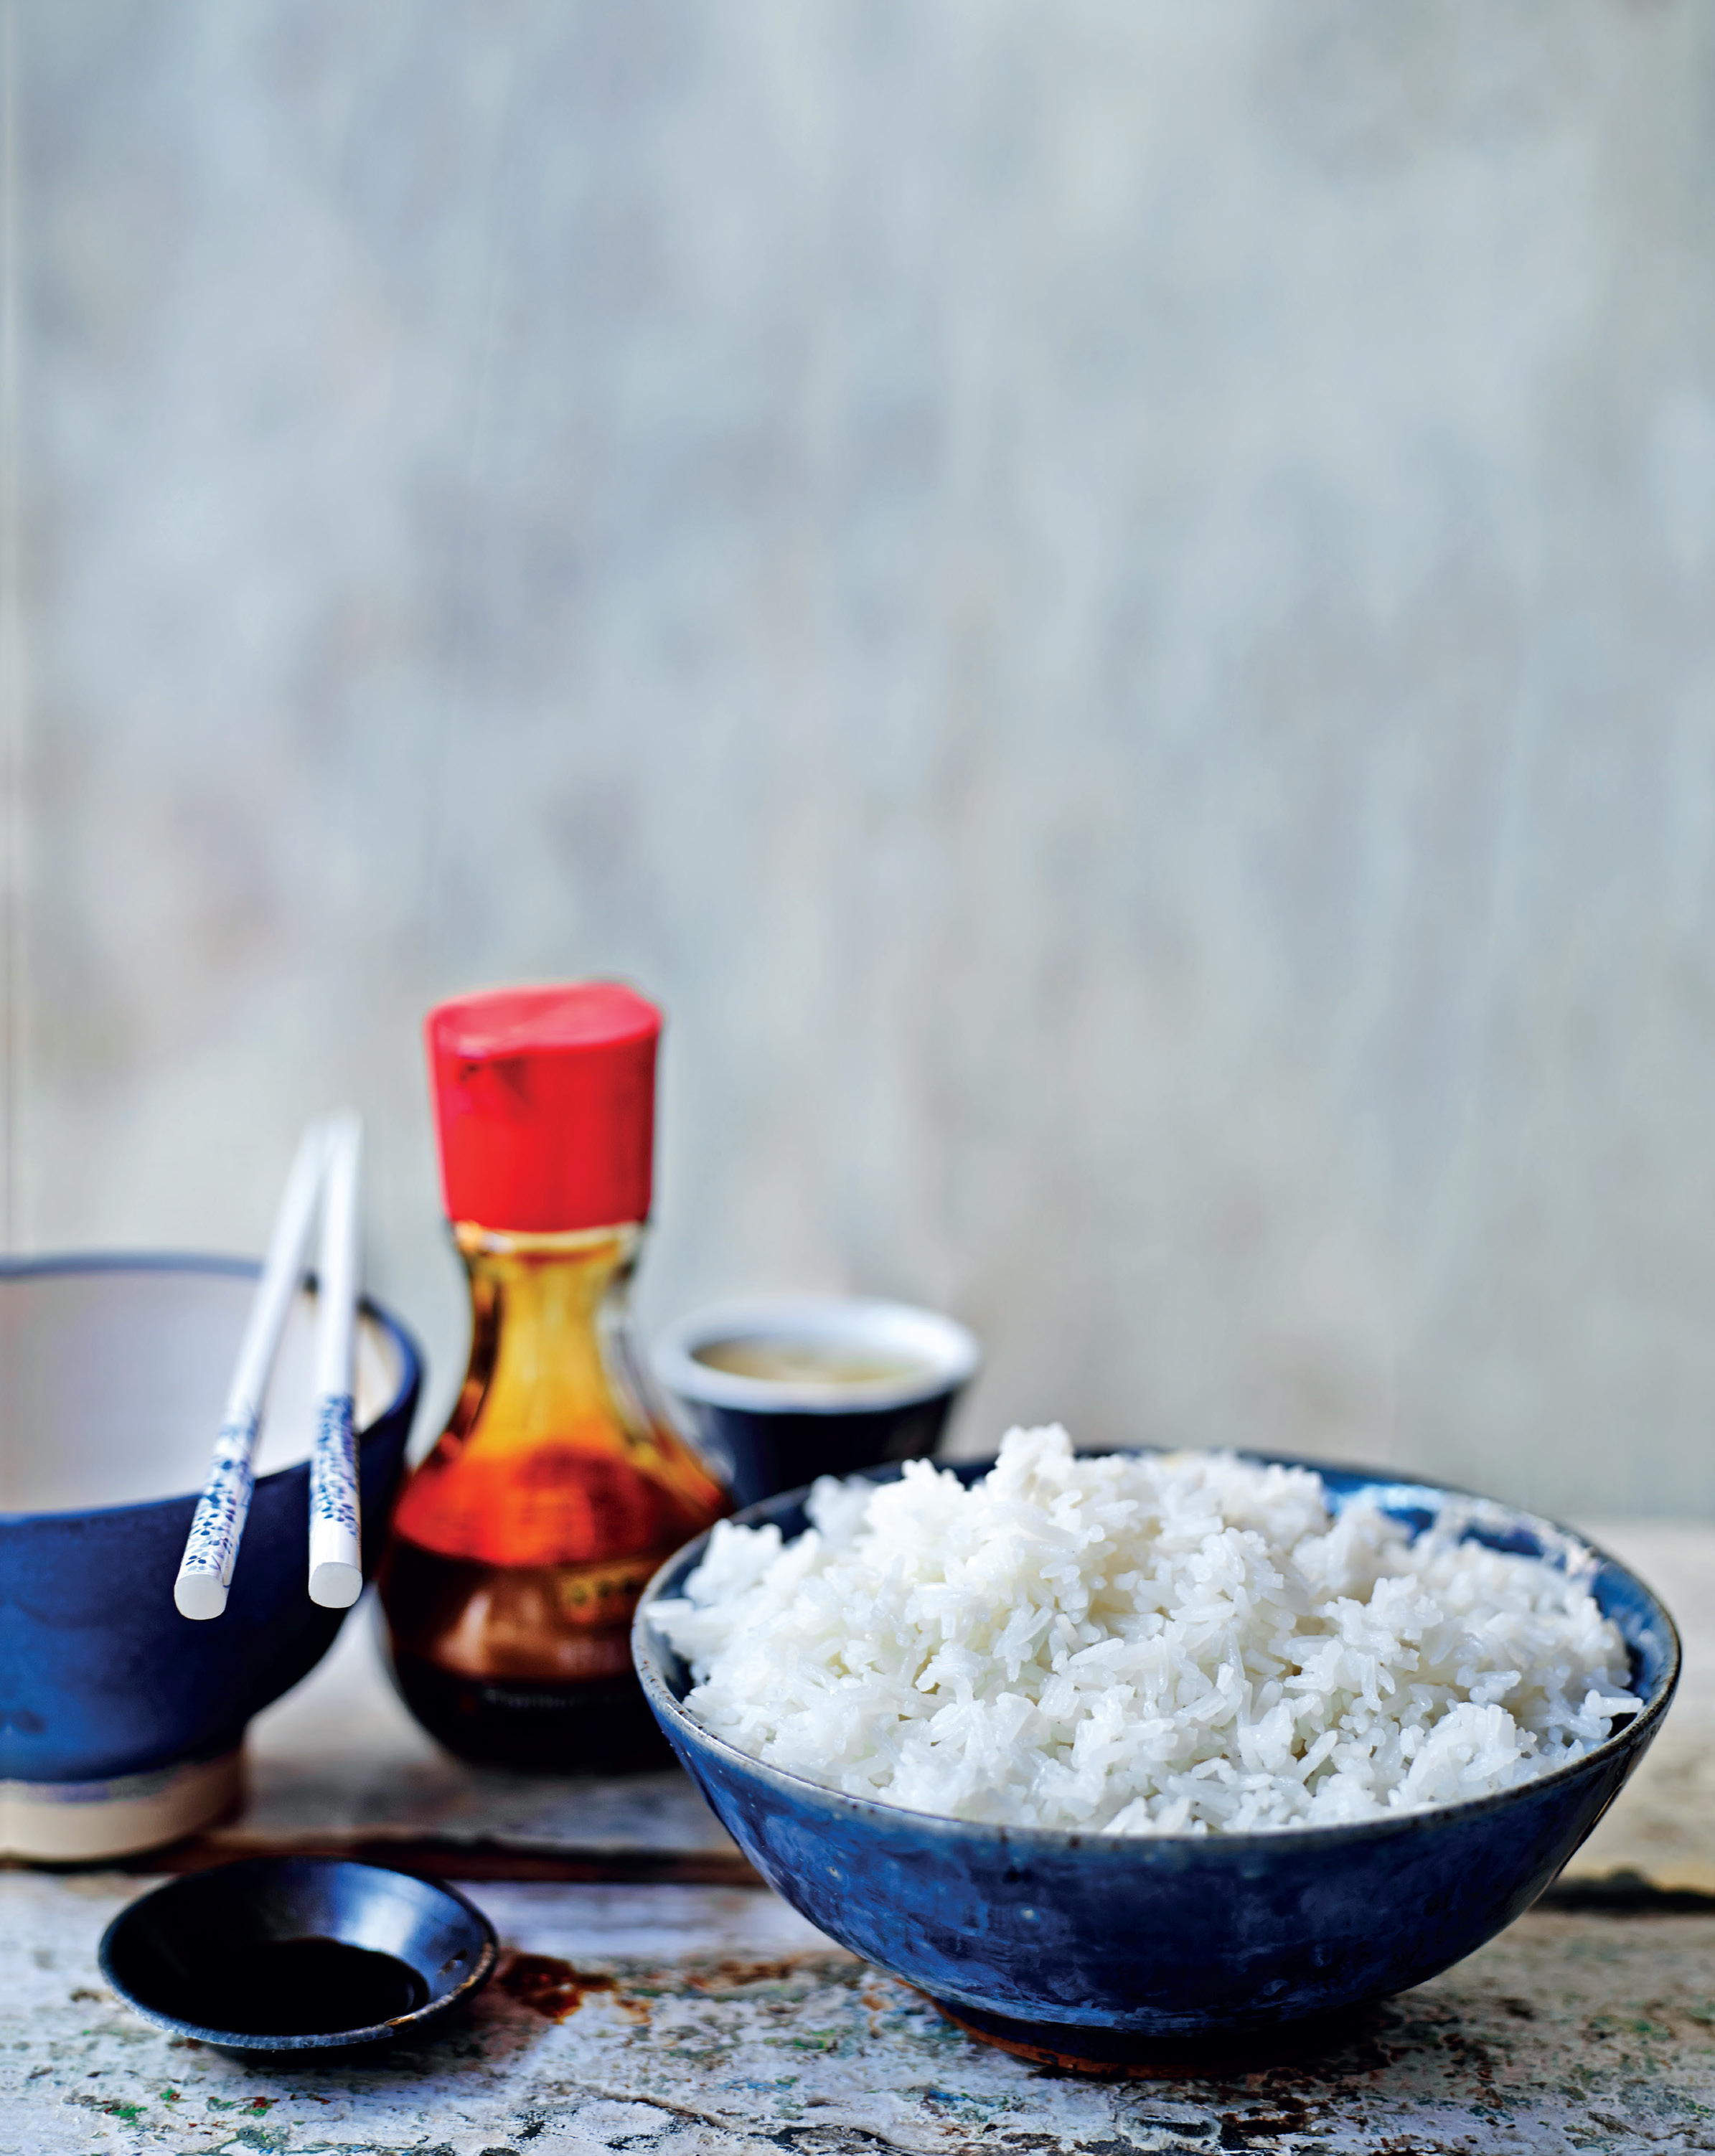 Simple boiled/steamed rice